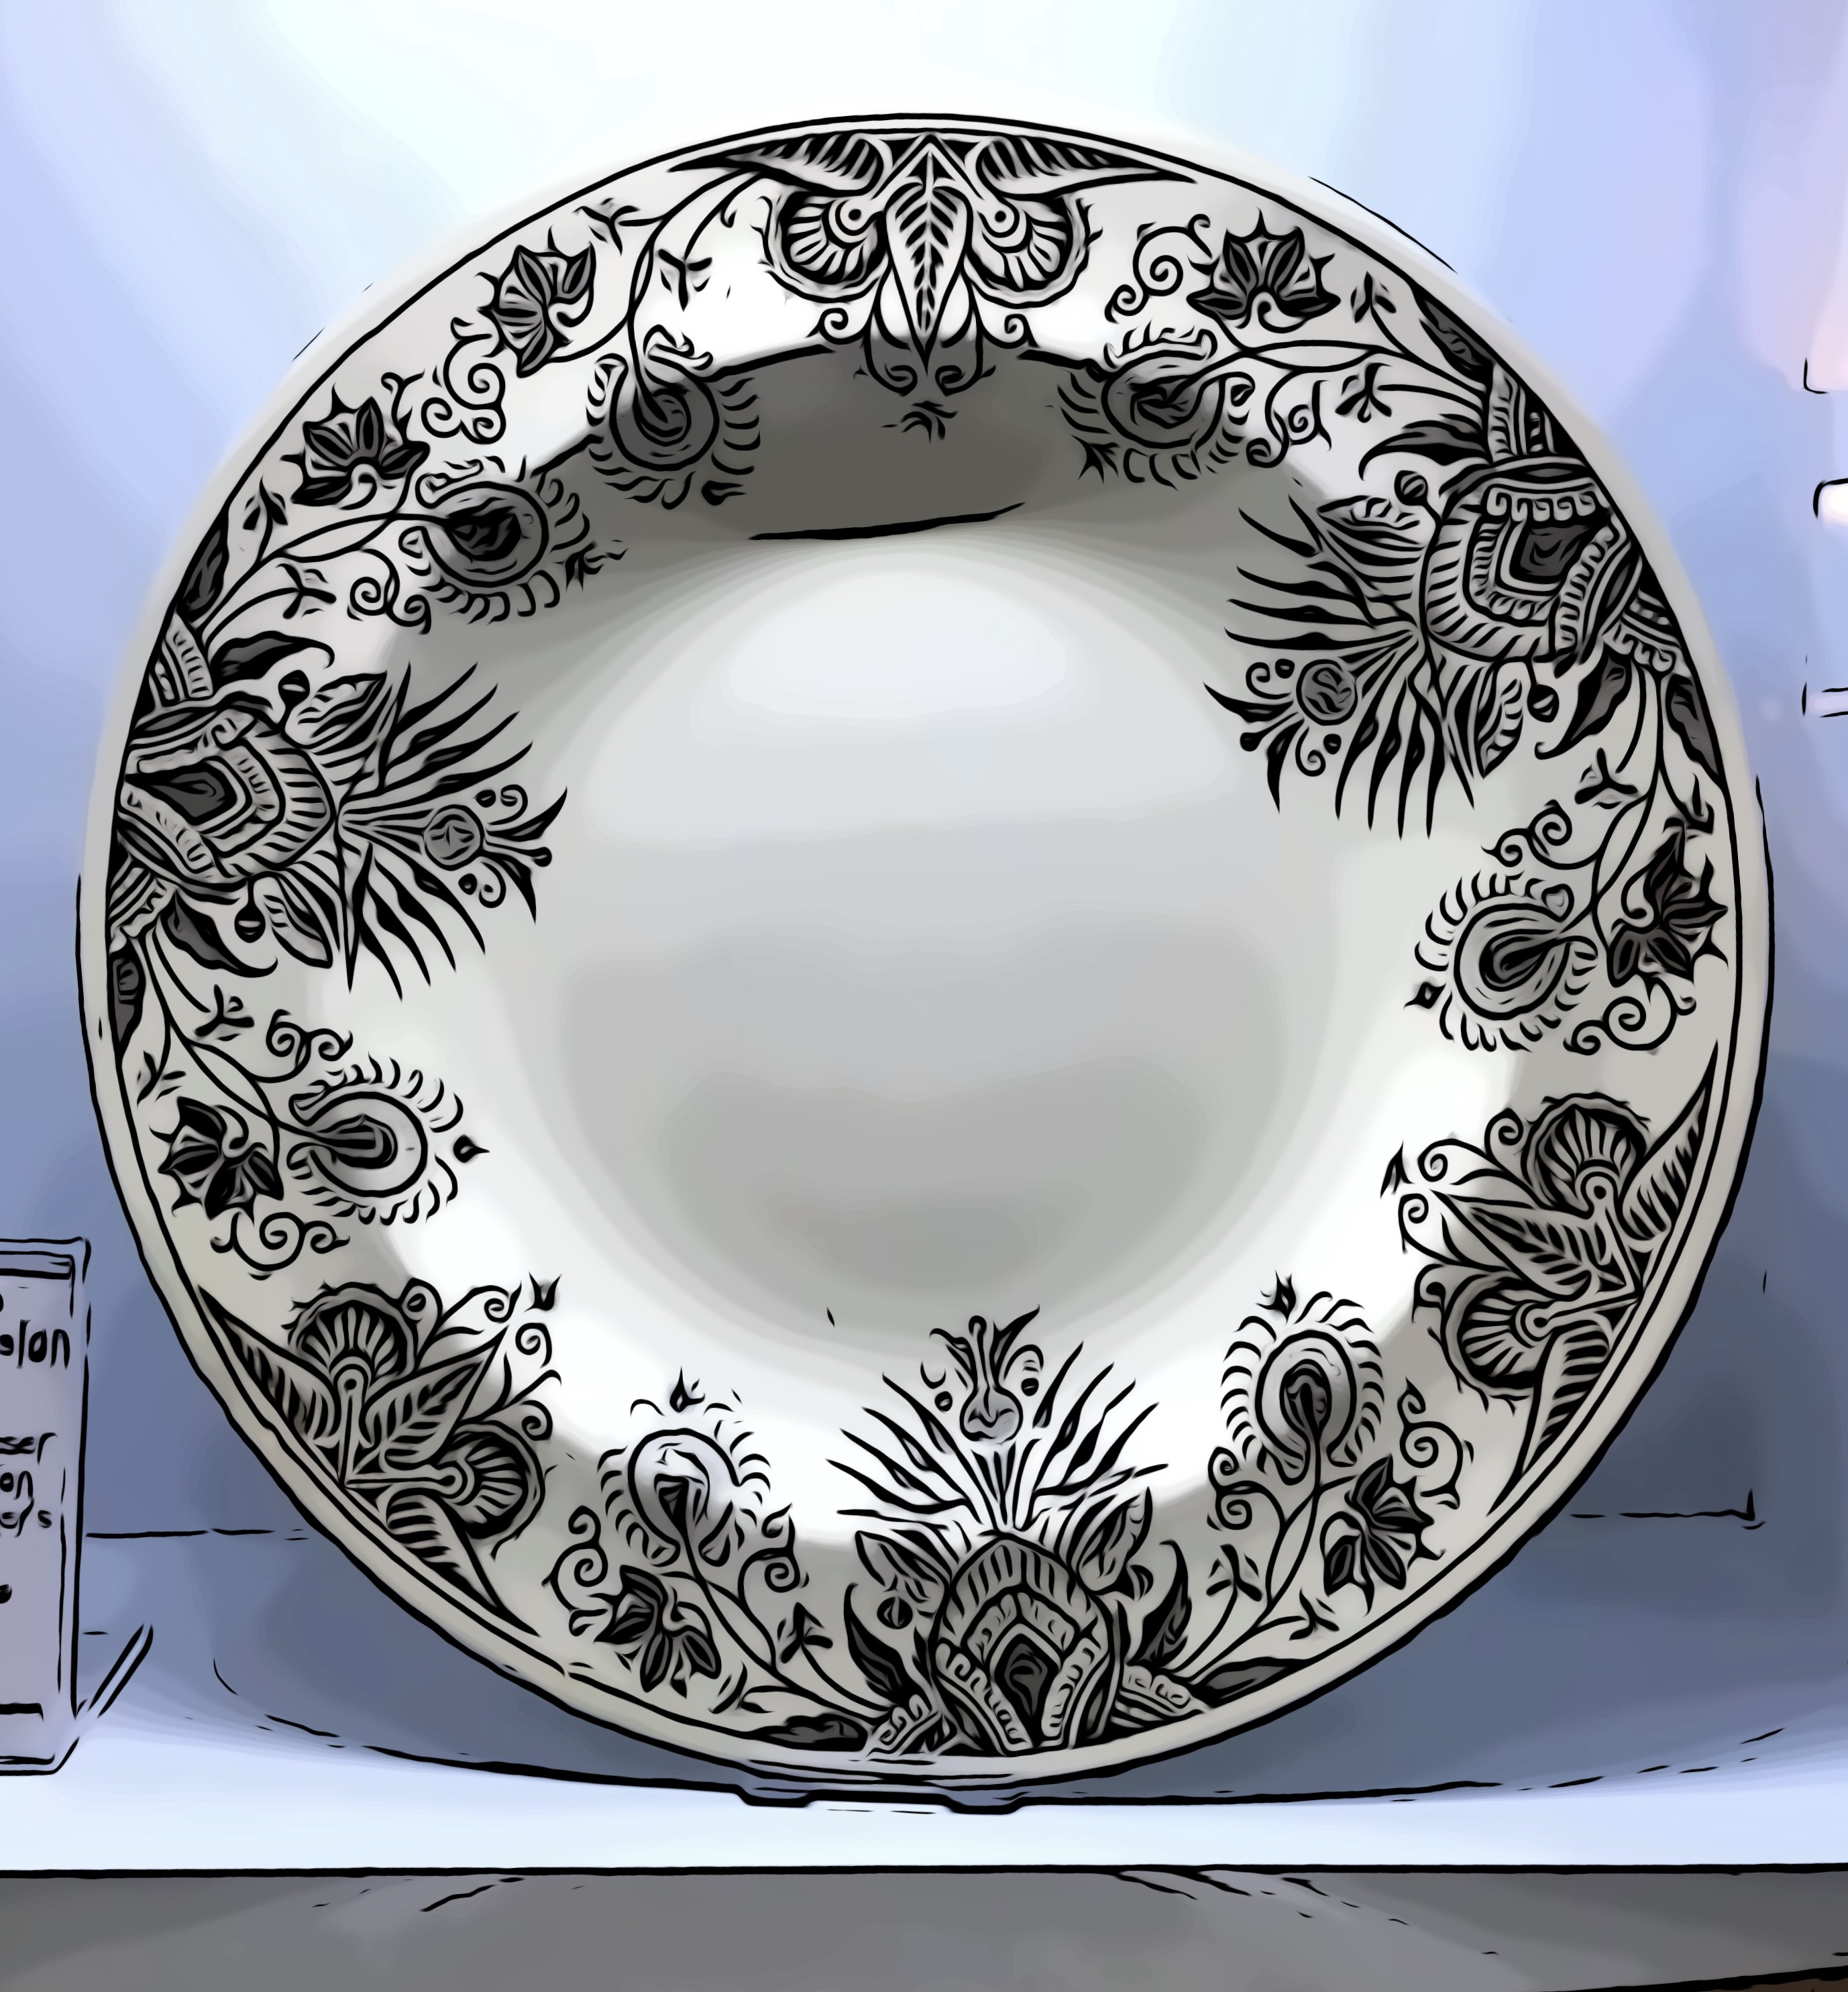 Image of the Owl Plate, part of a dinner service designed by Christopher Dresser